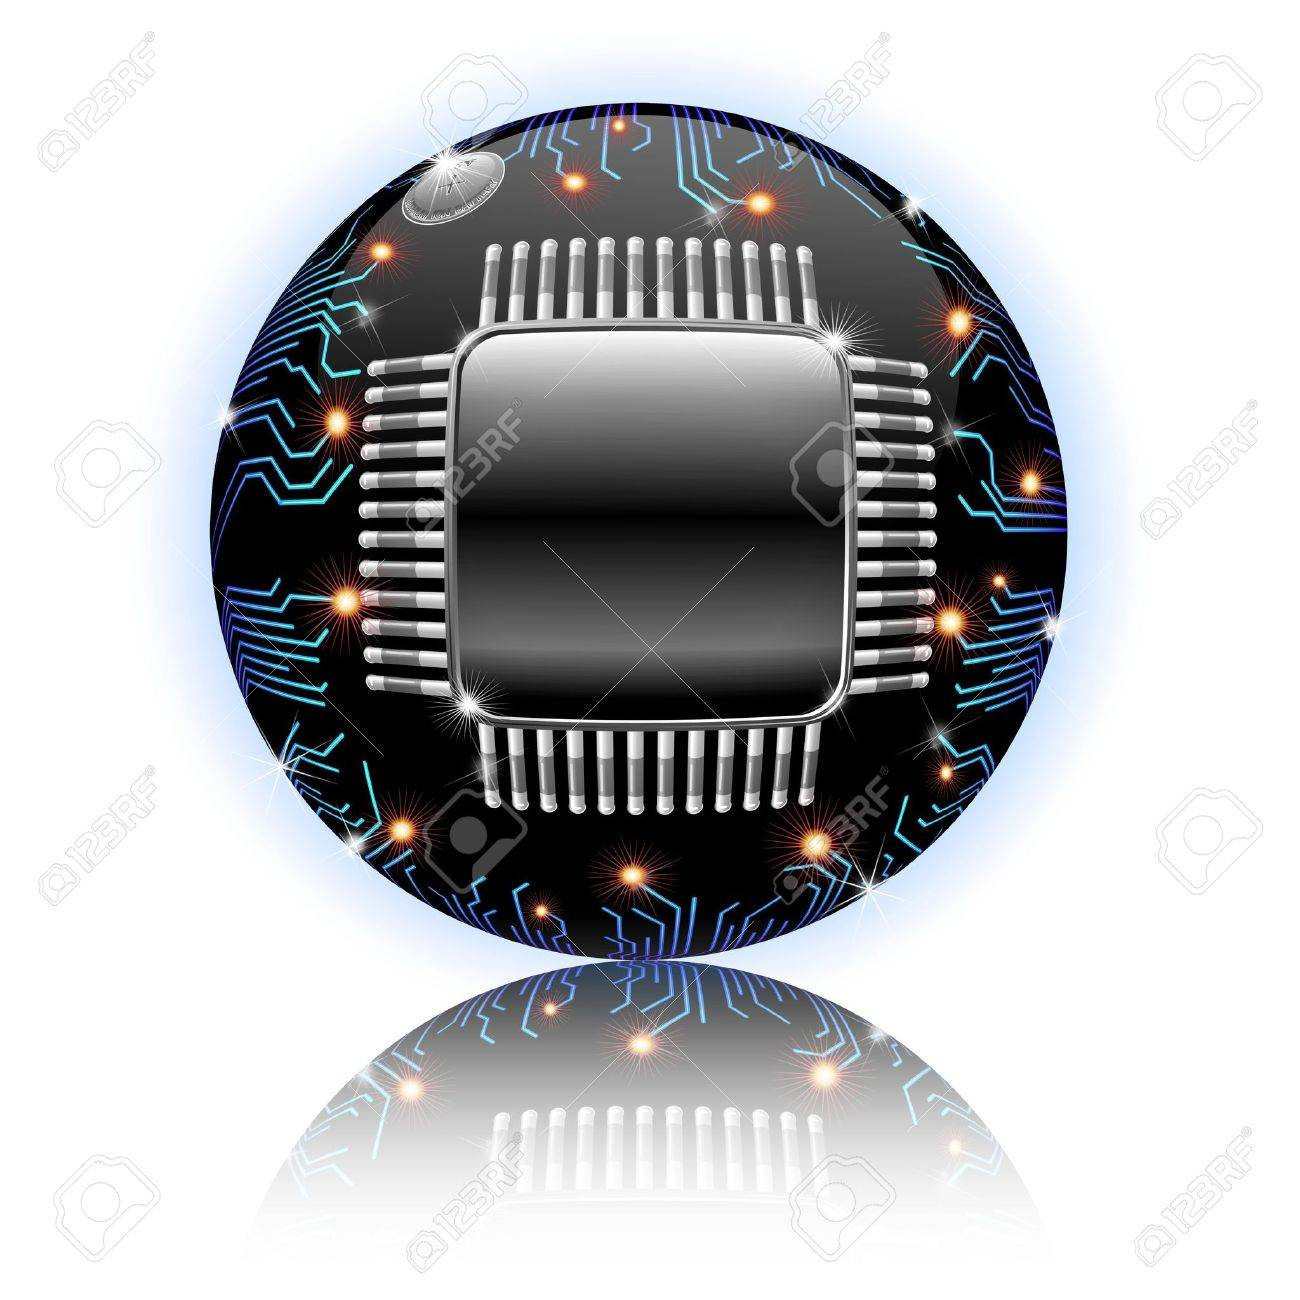 Electronic Motherboard Circuit Sphere Globe isolated on White Stock Photo - 14624696